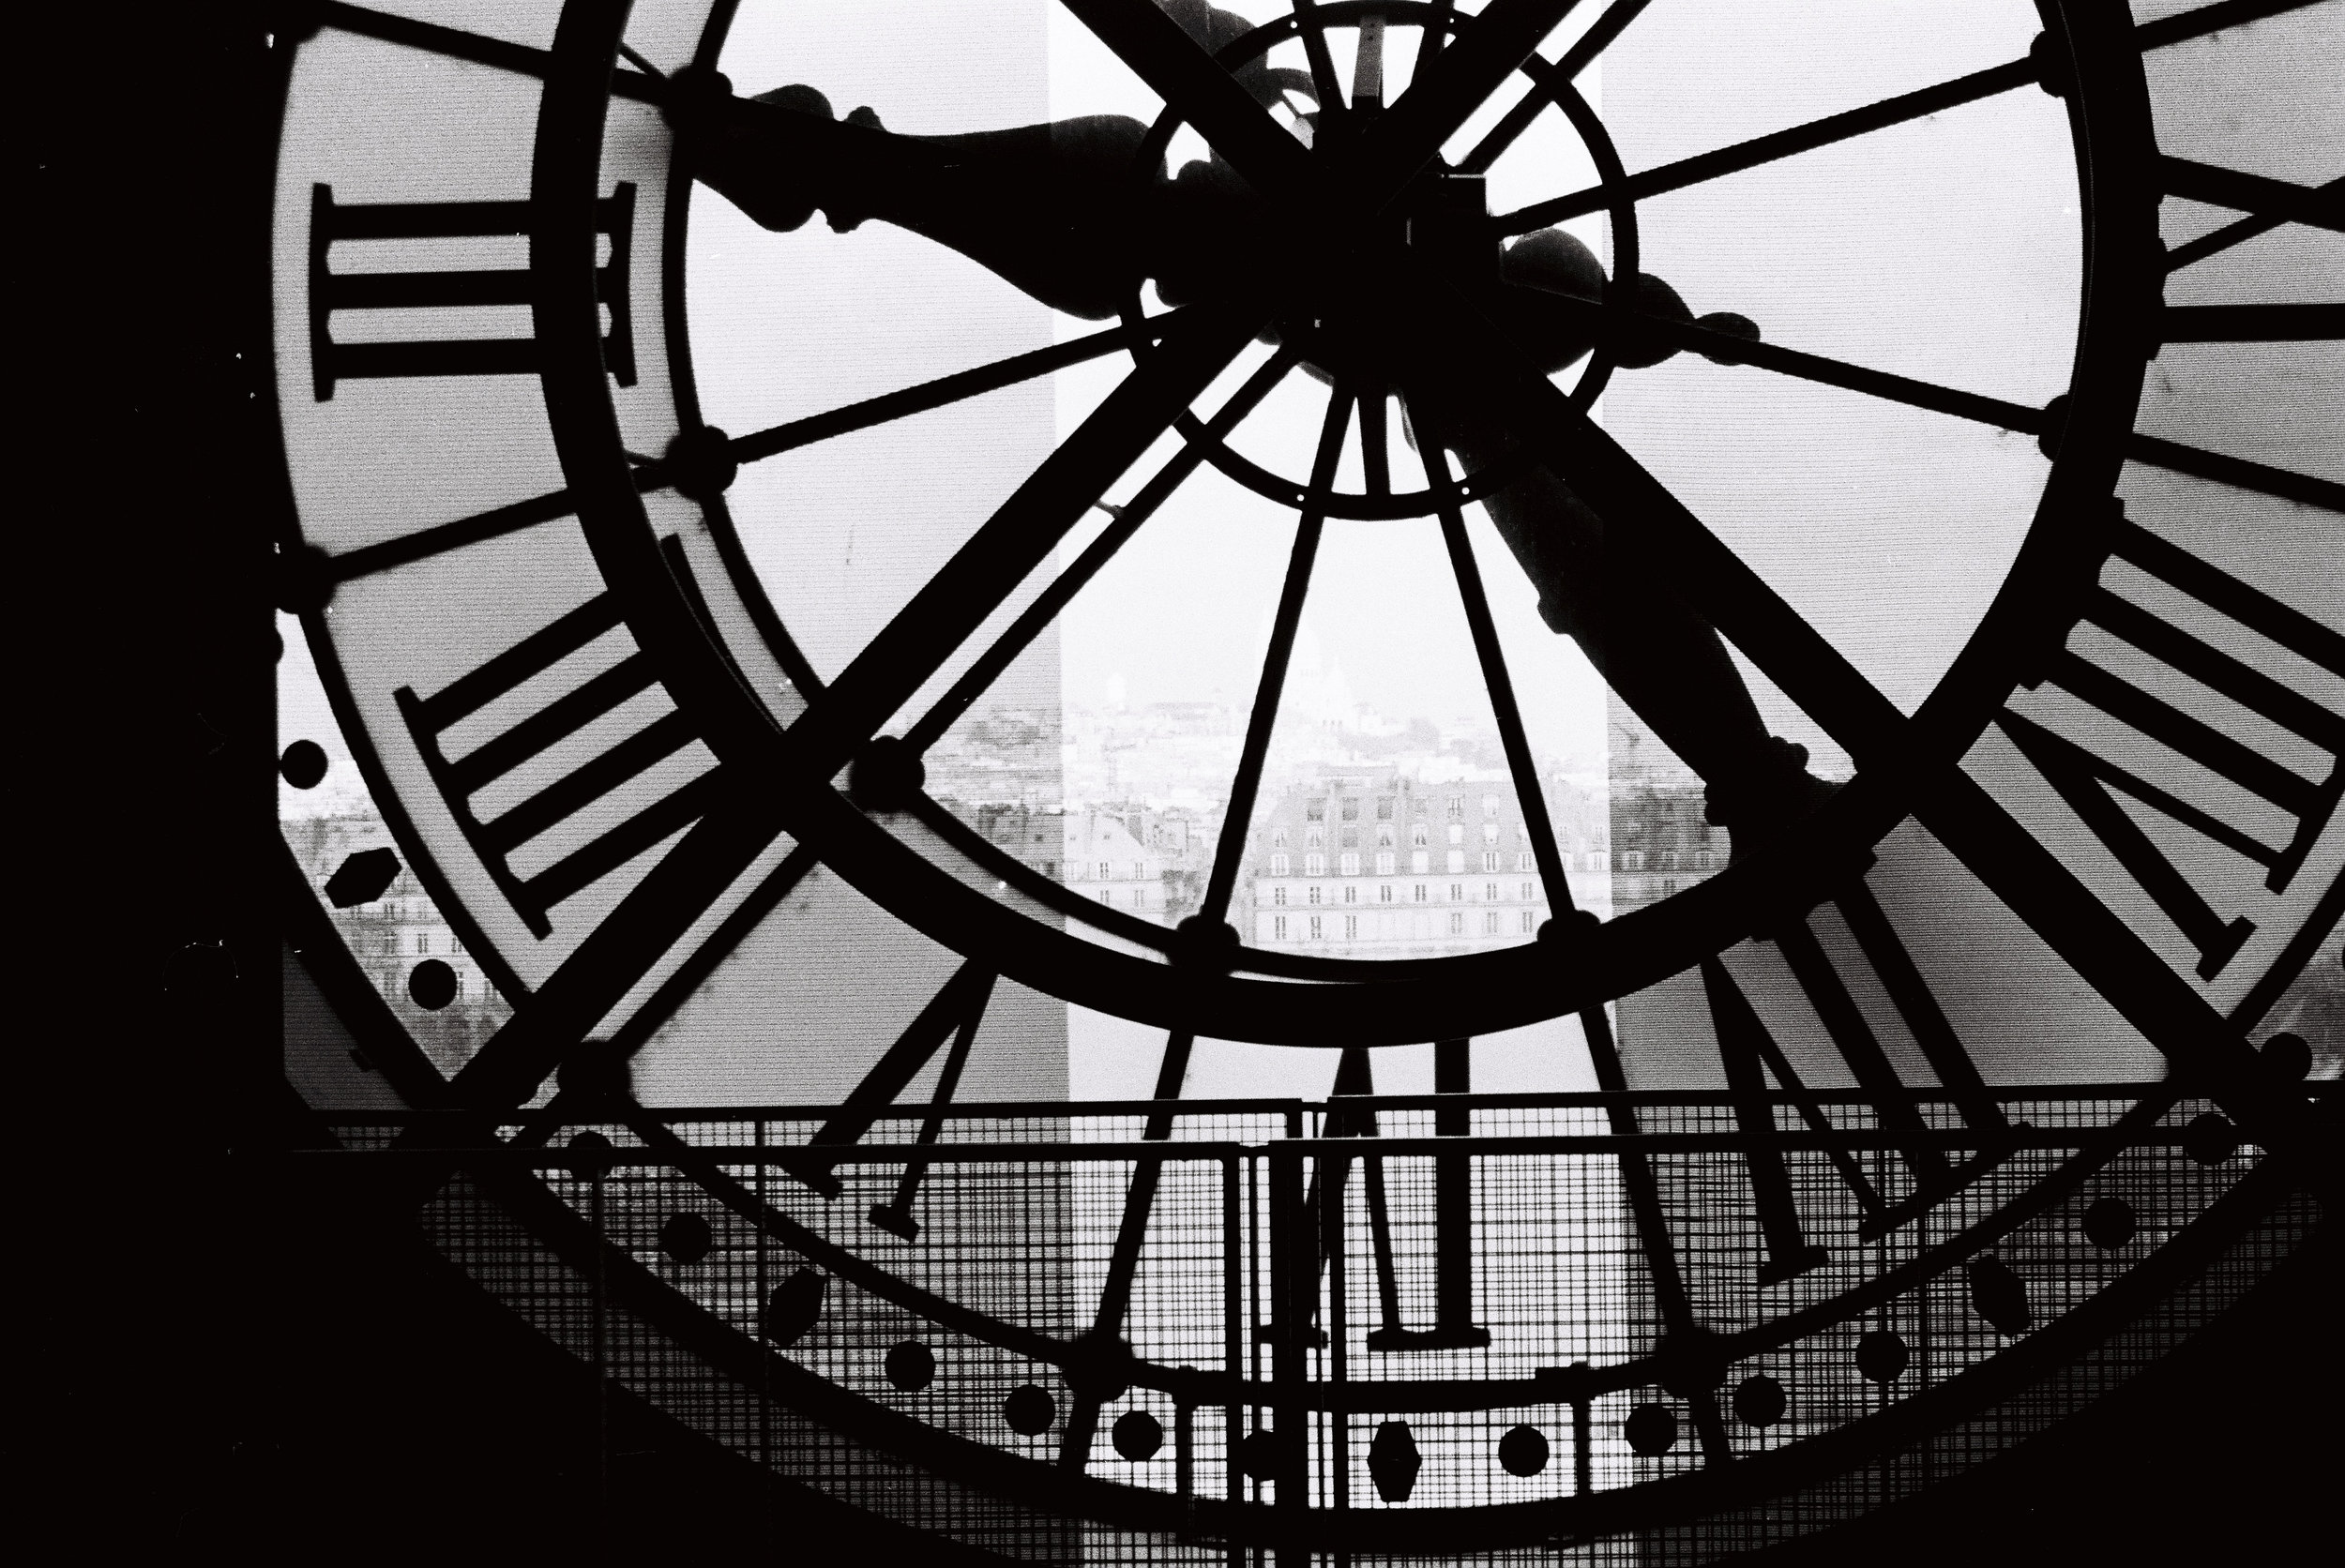 Musee d'Orsay clock in black and white @rebeccaplotnick Every Day Parisian